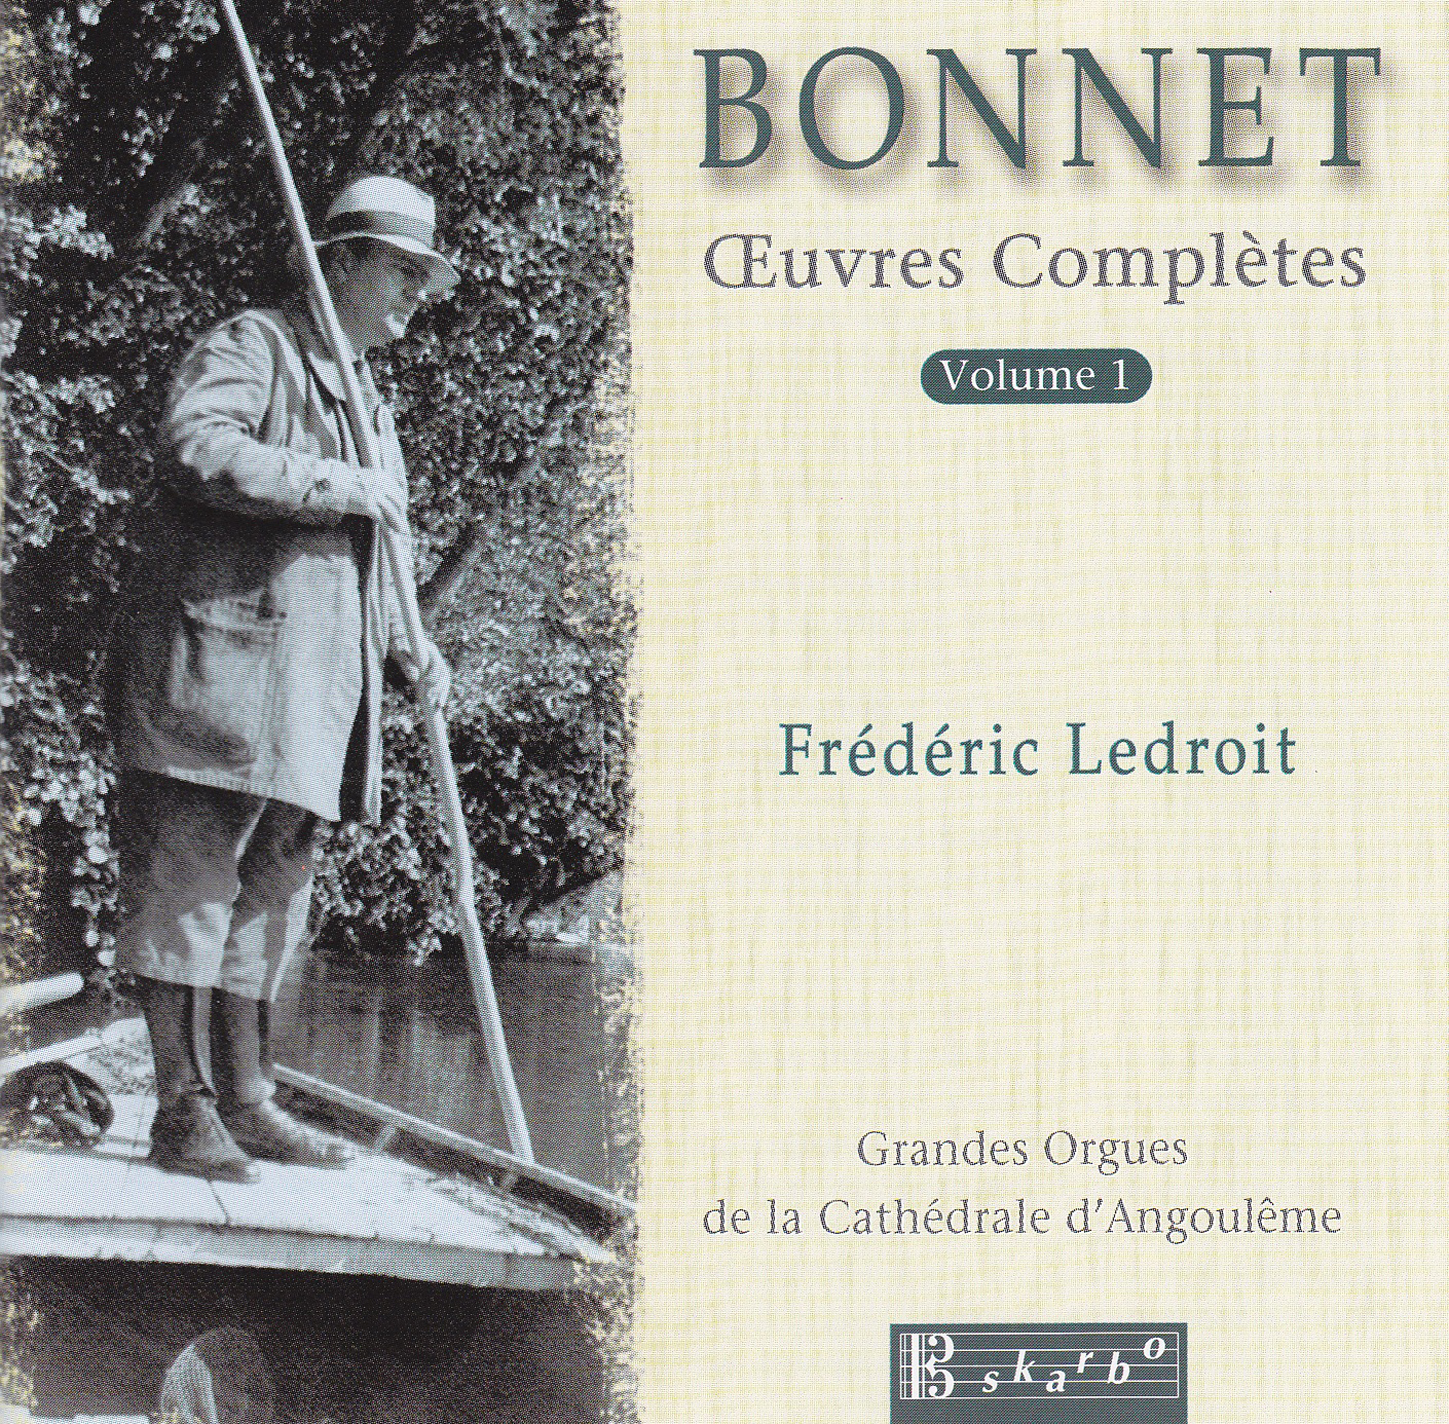 12 Pieces d'orgue, Op. 5, 12 Pieces d'orgue, Op. 5: 1. Prelude